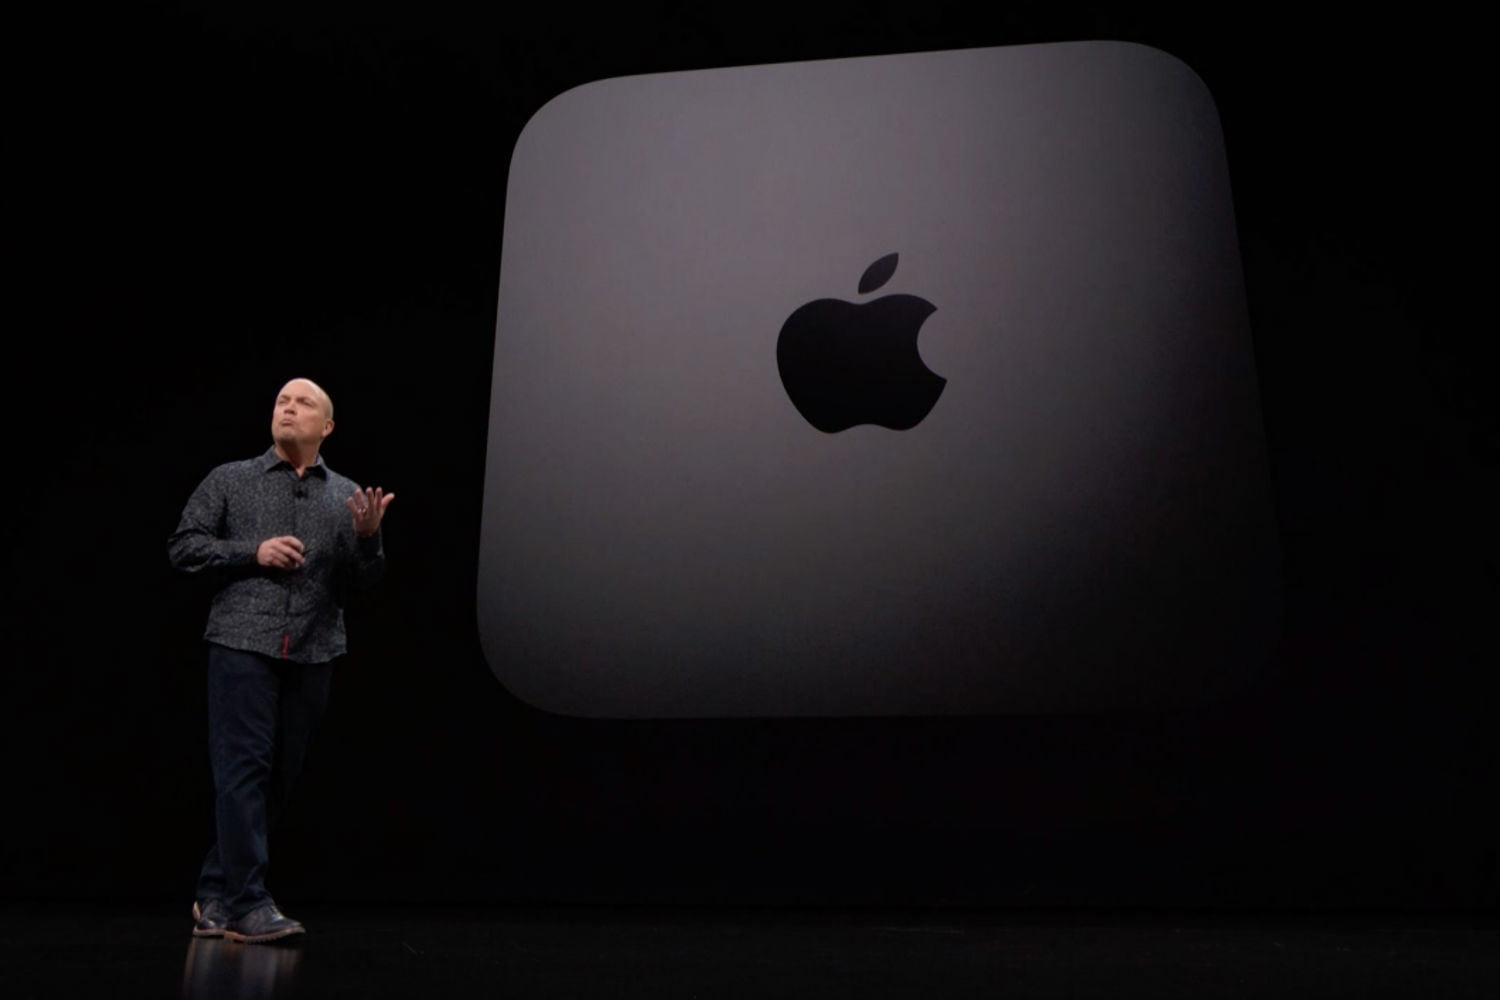 Mac Mini 2018: Price, Release Date, Specs, and Features